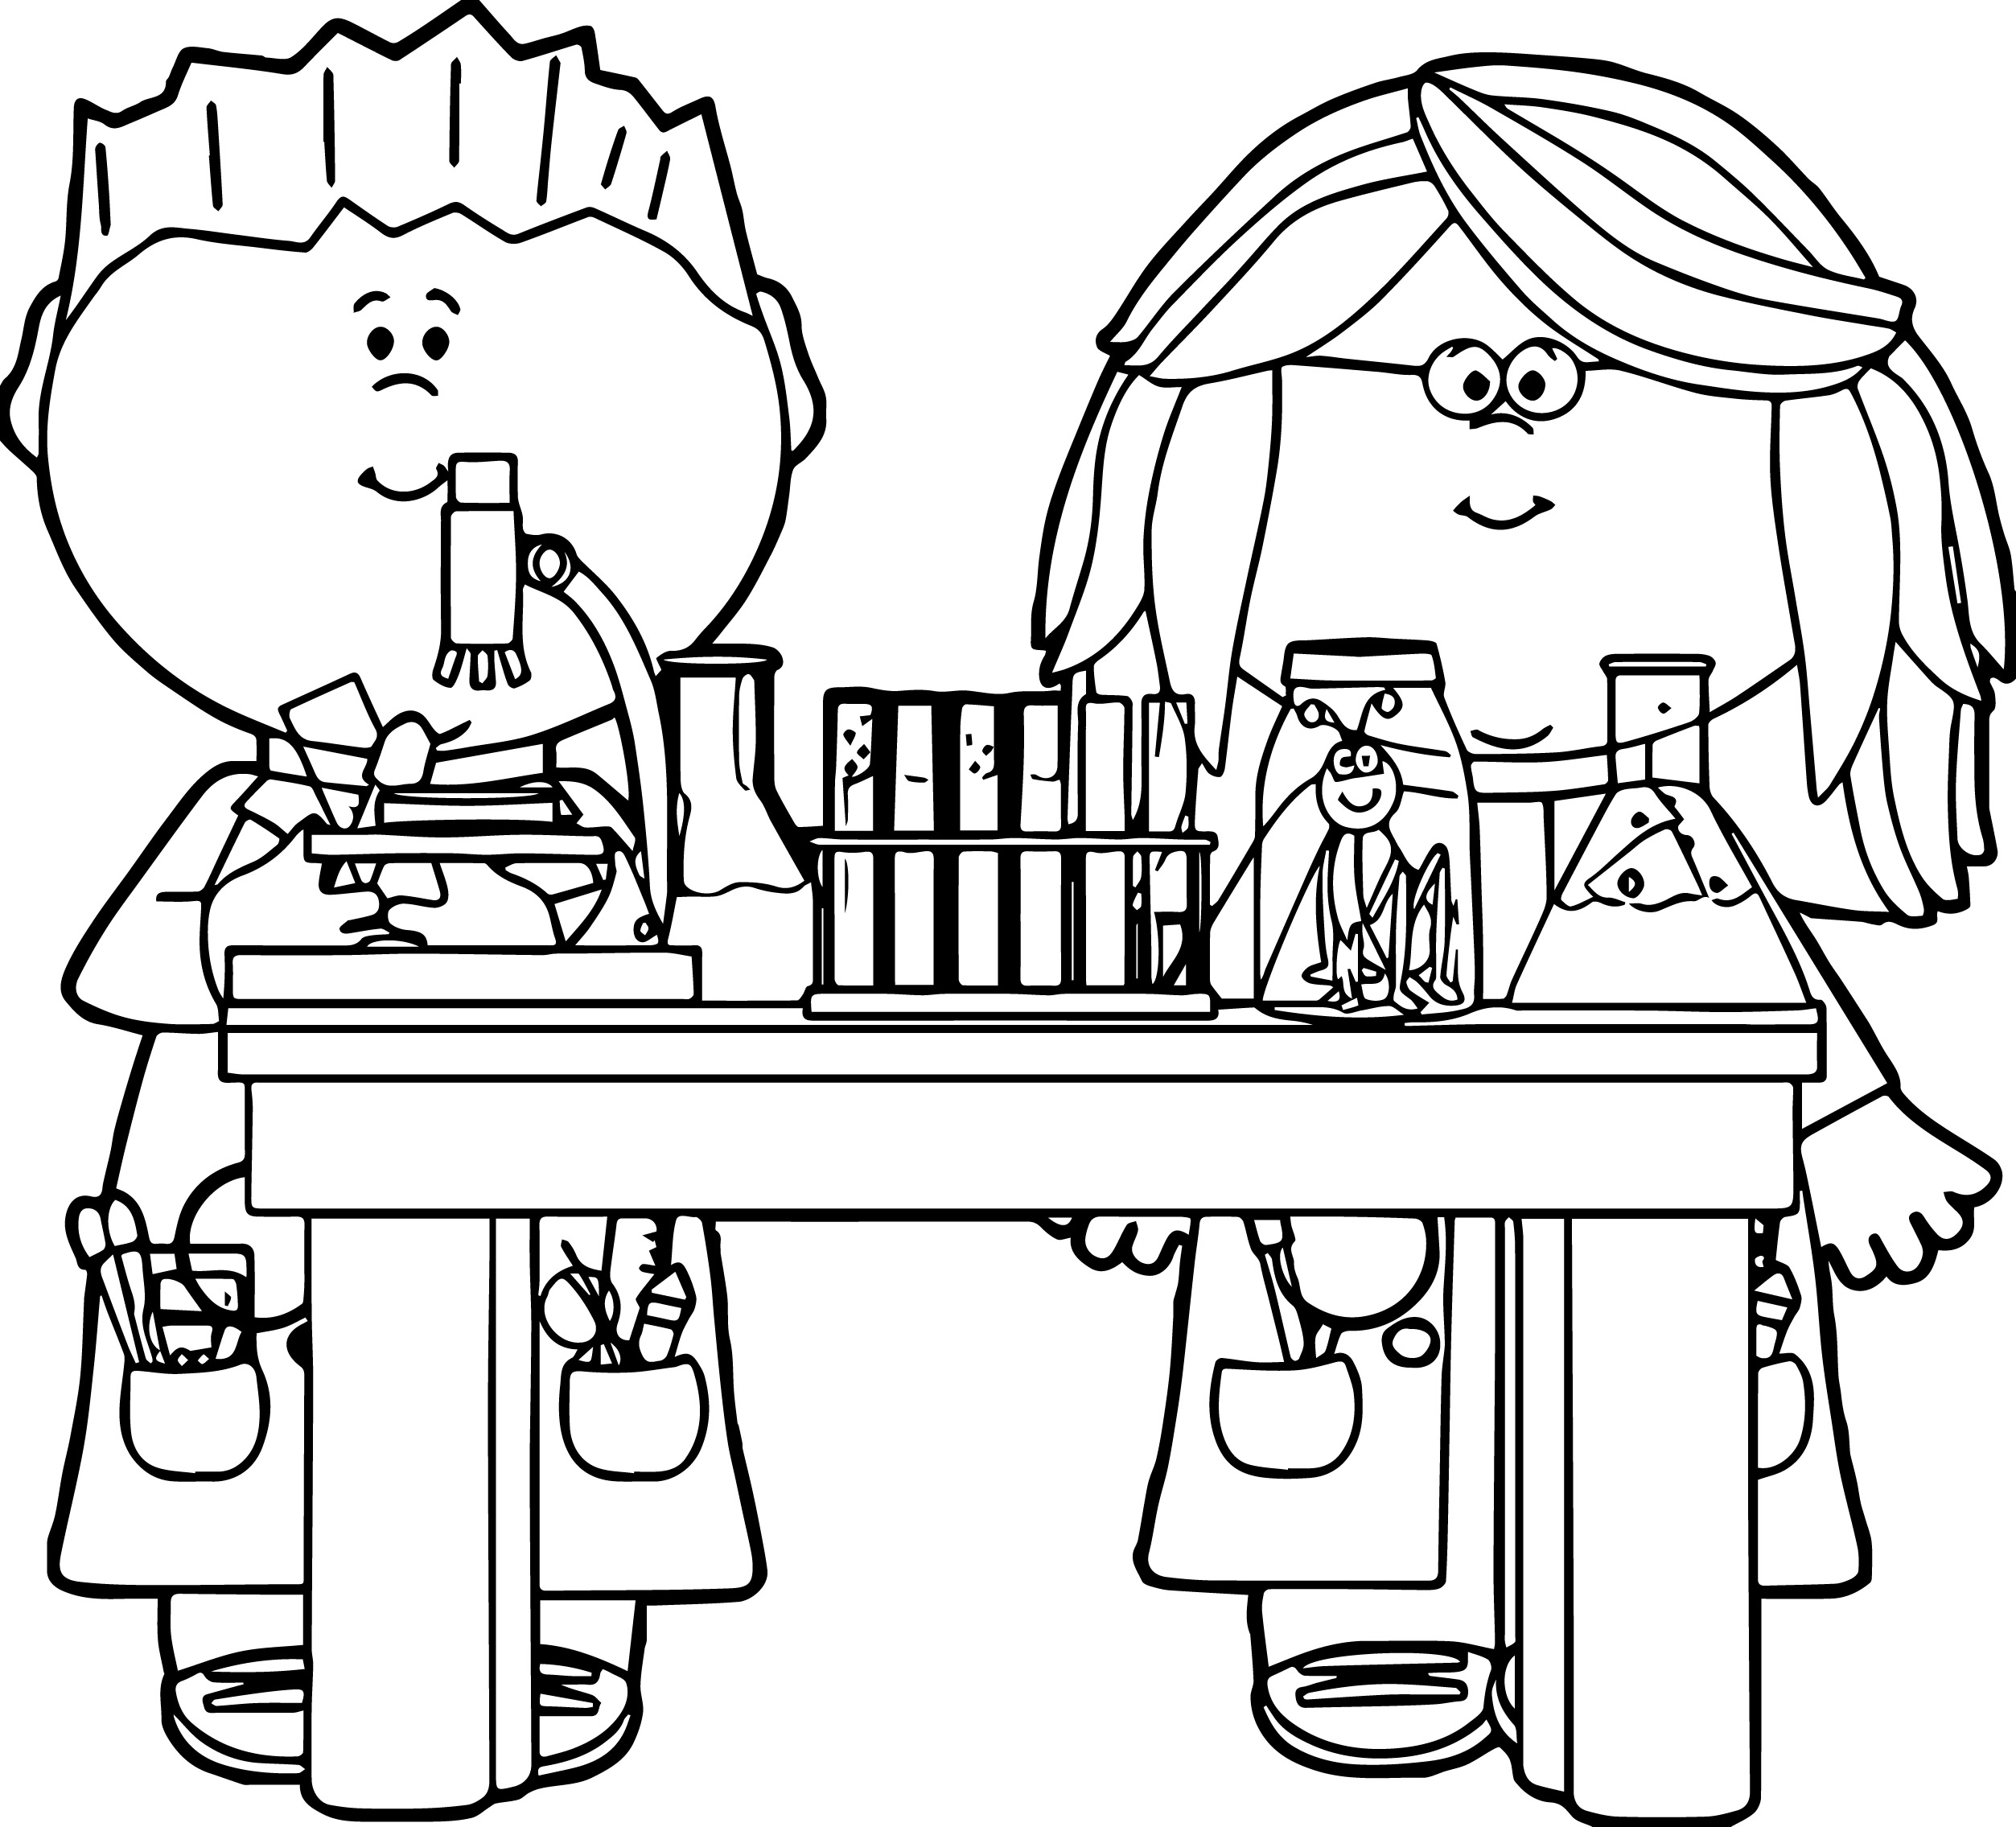 2506x2271 Chemistry Coloring Pages Free Murderthestout Science And Set Black